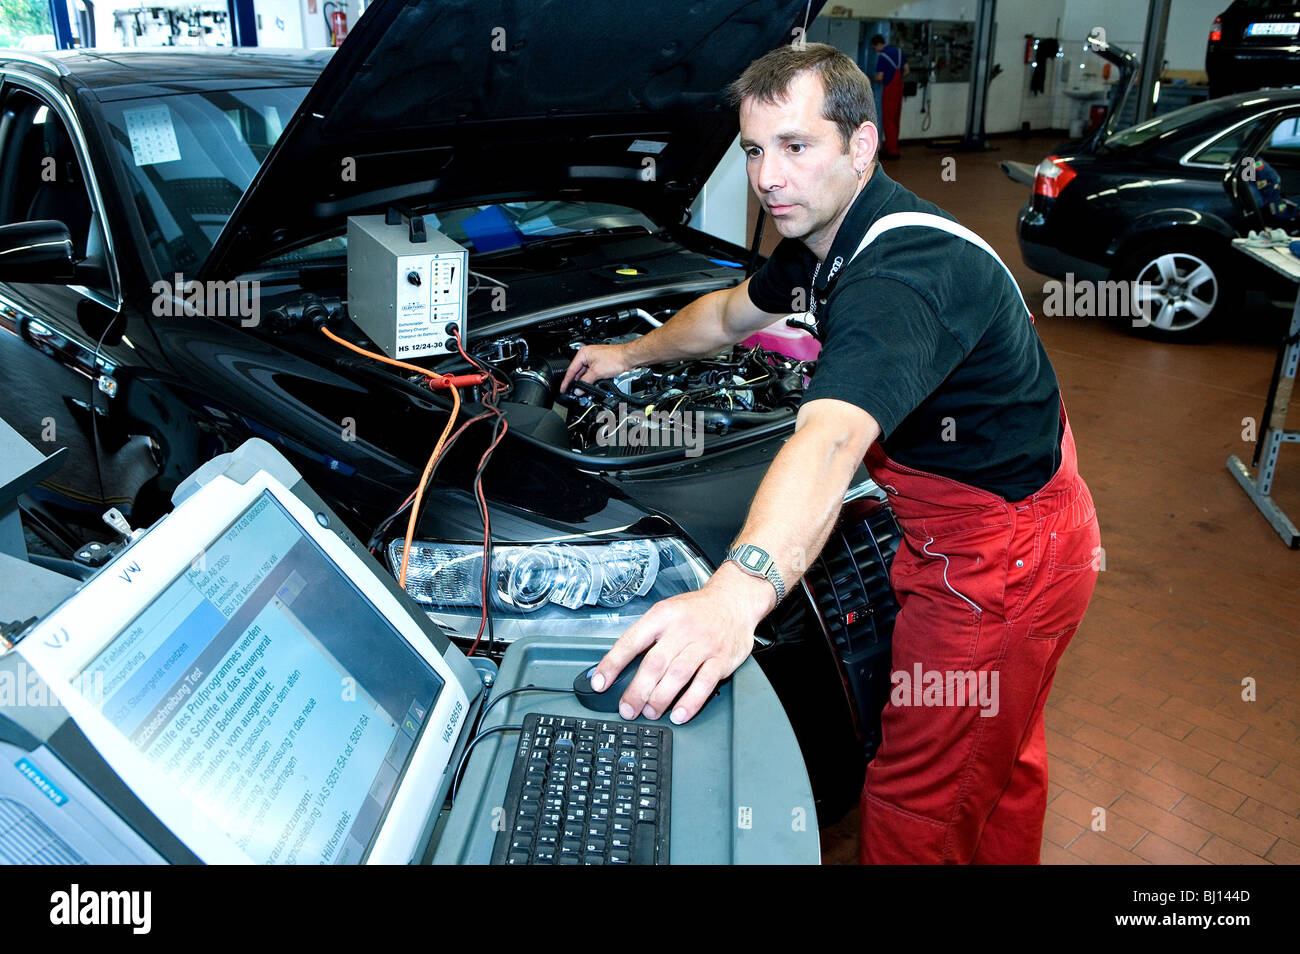 Mechanic checking the fault recorder of a car in search for errors - Stock Image